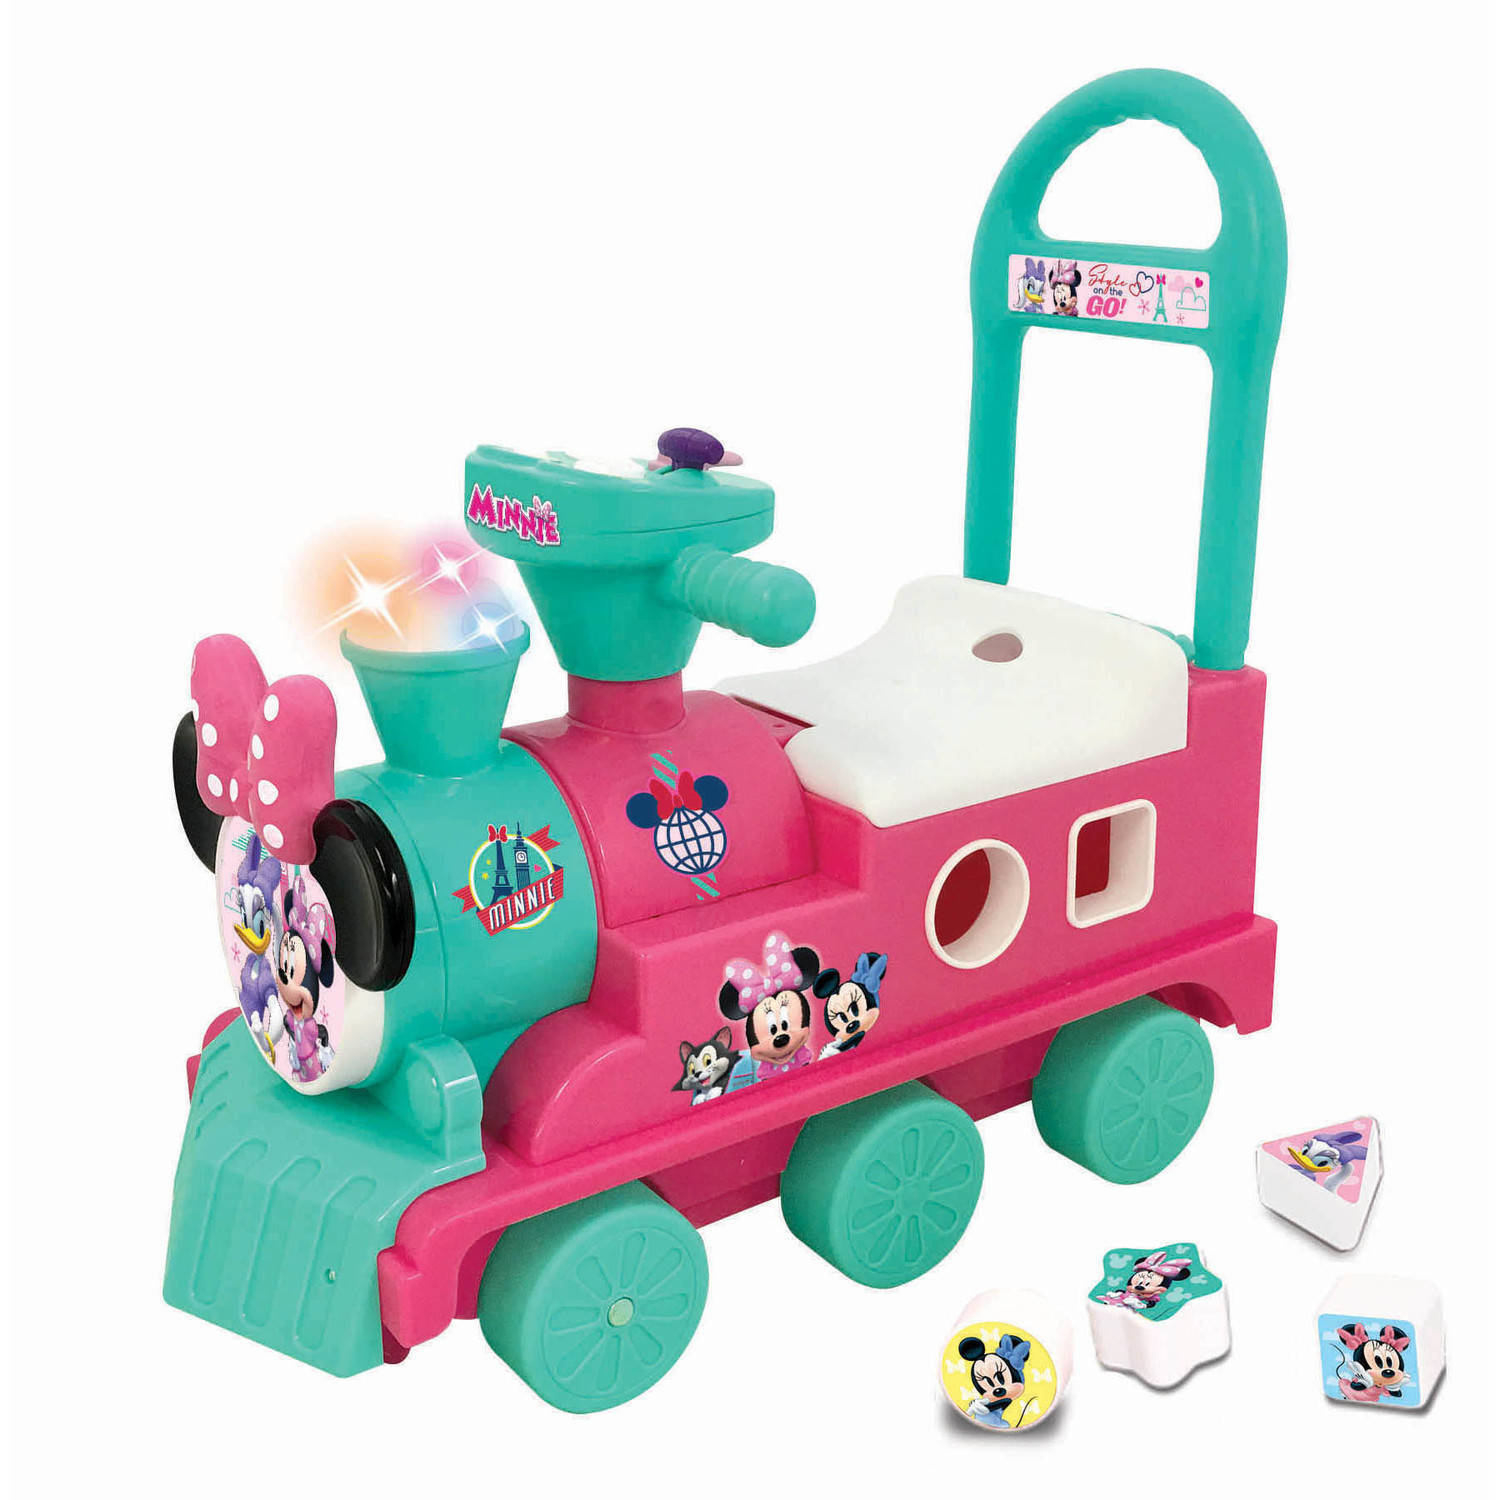 Kiddieland Disney Minnie Mouse Play n\' Sort Activity Train Ride-On ...